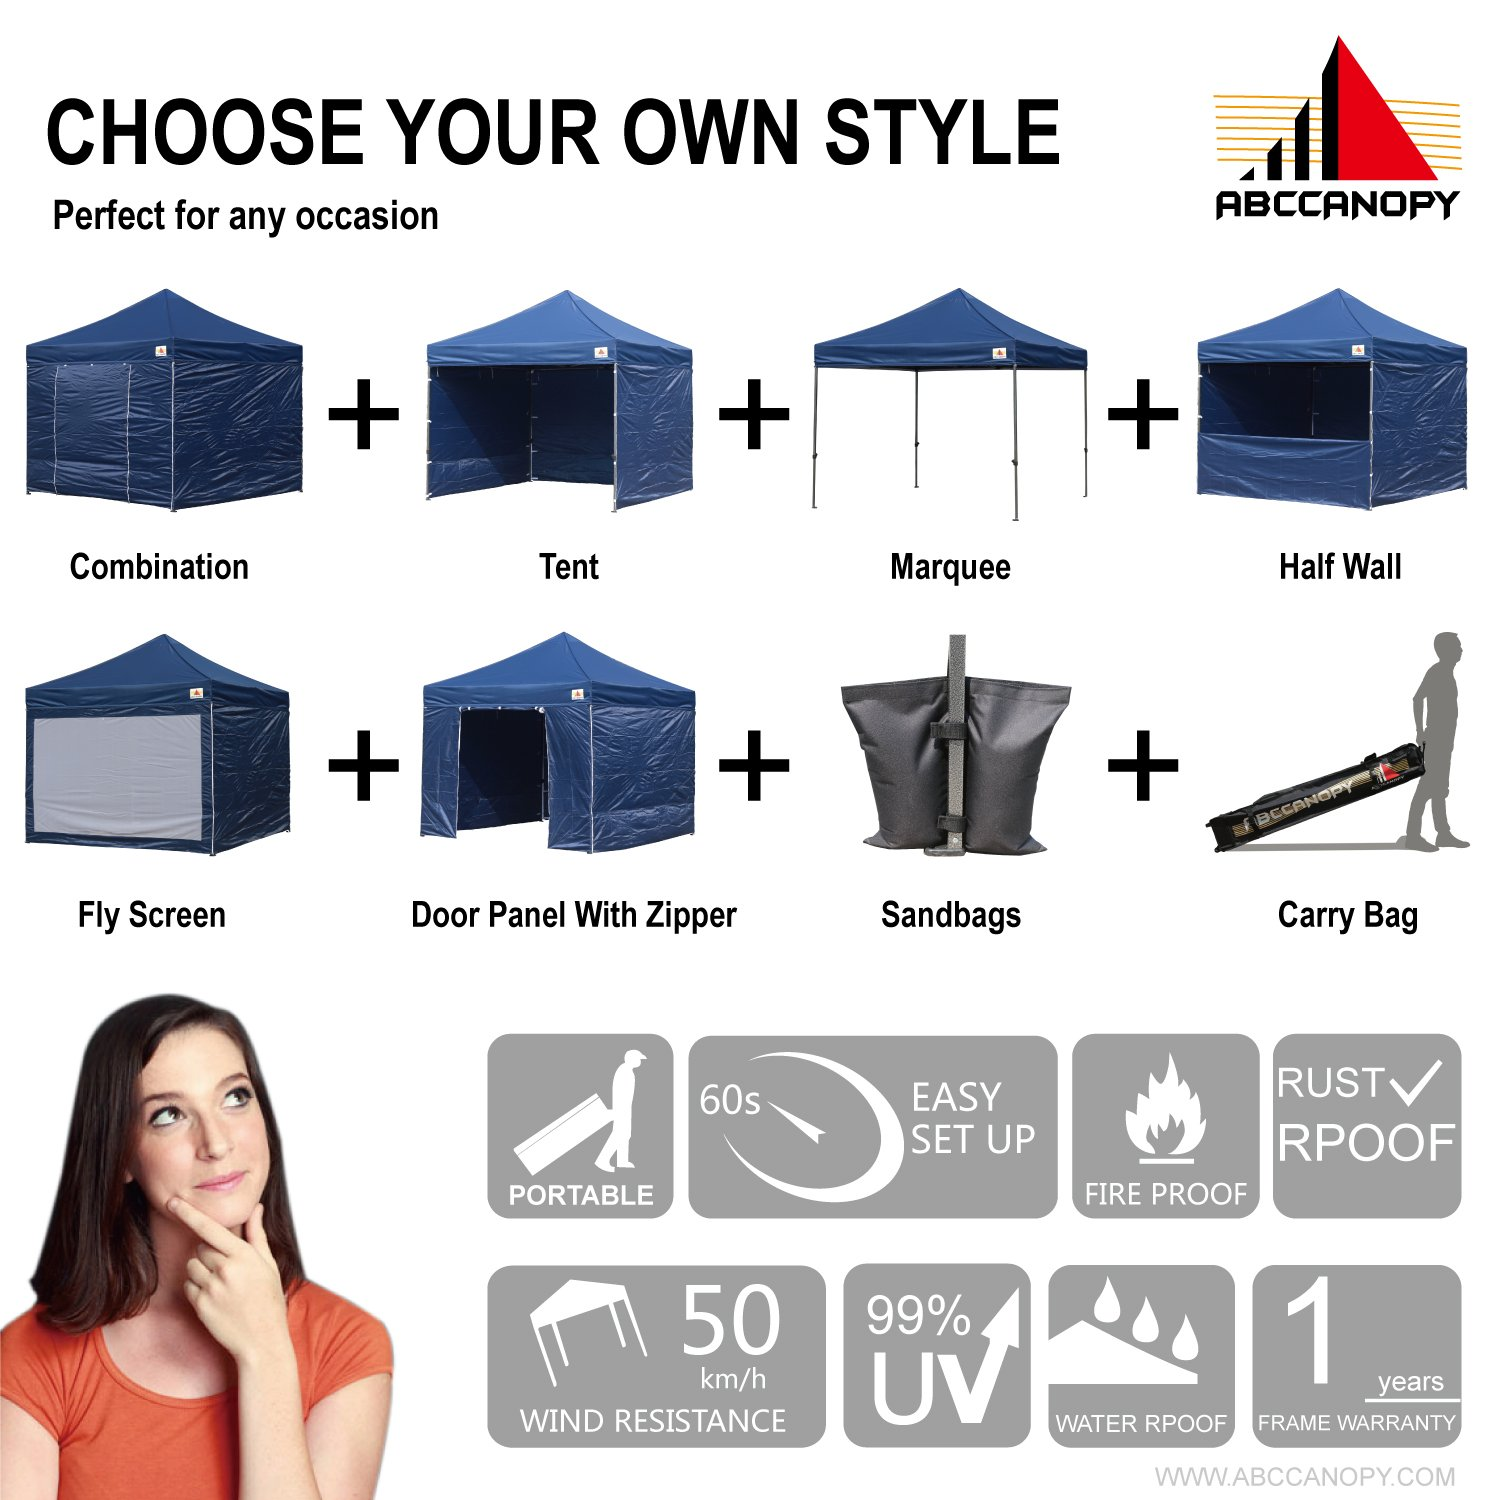 AbcCanopy Commercial 10x10 Instant Canopy Craft Display Tent Portable Booth Market Stall with Wheeled Carry Bag & Full Walls , Bonus 4x Weight Bag & 10ft Screen Wall & 10ft Half Wall (NAVY BLUE) by abccanopy (Image #3)